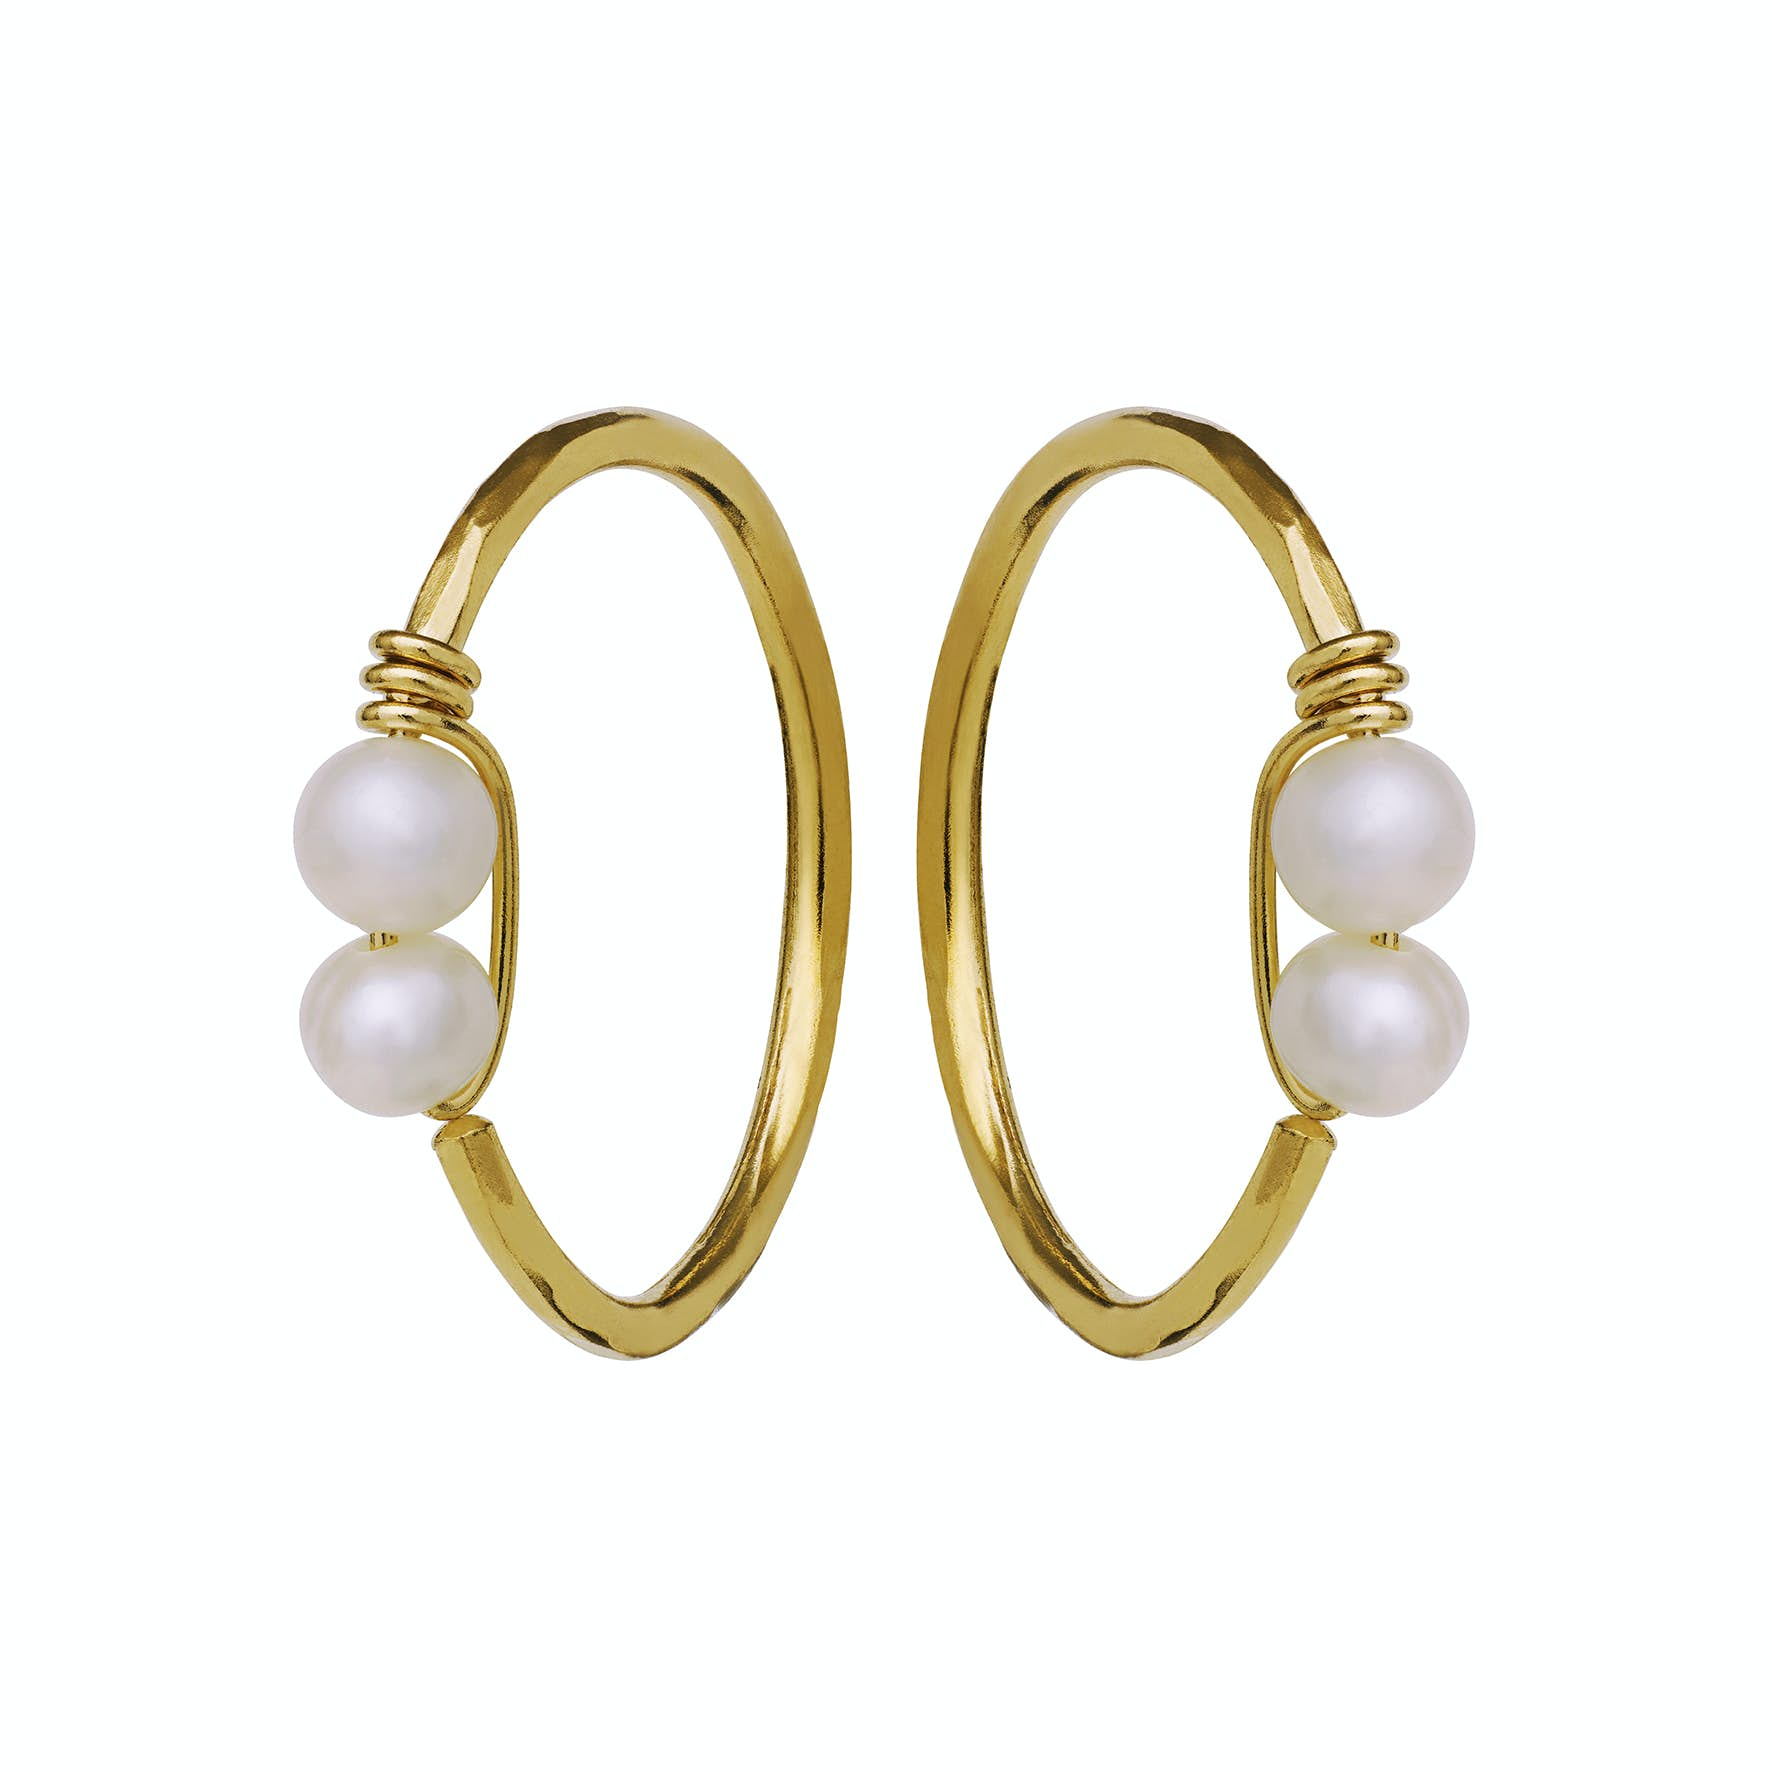 Donna Earrings from Maanesten in Goldplated-Silver Sterling 925|Freshwater Pearl